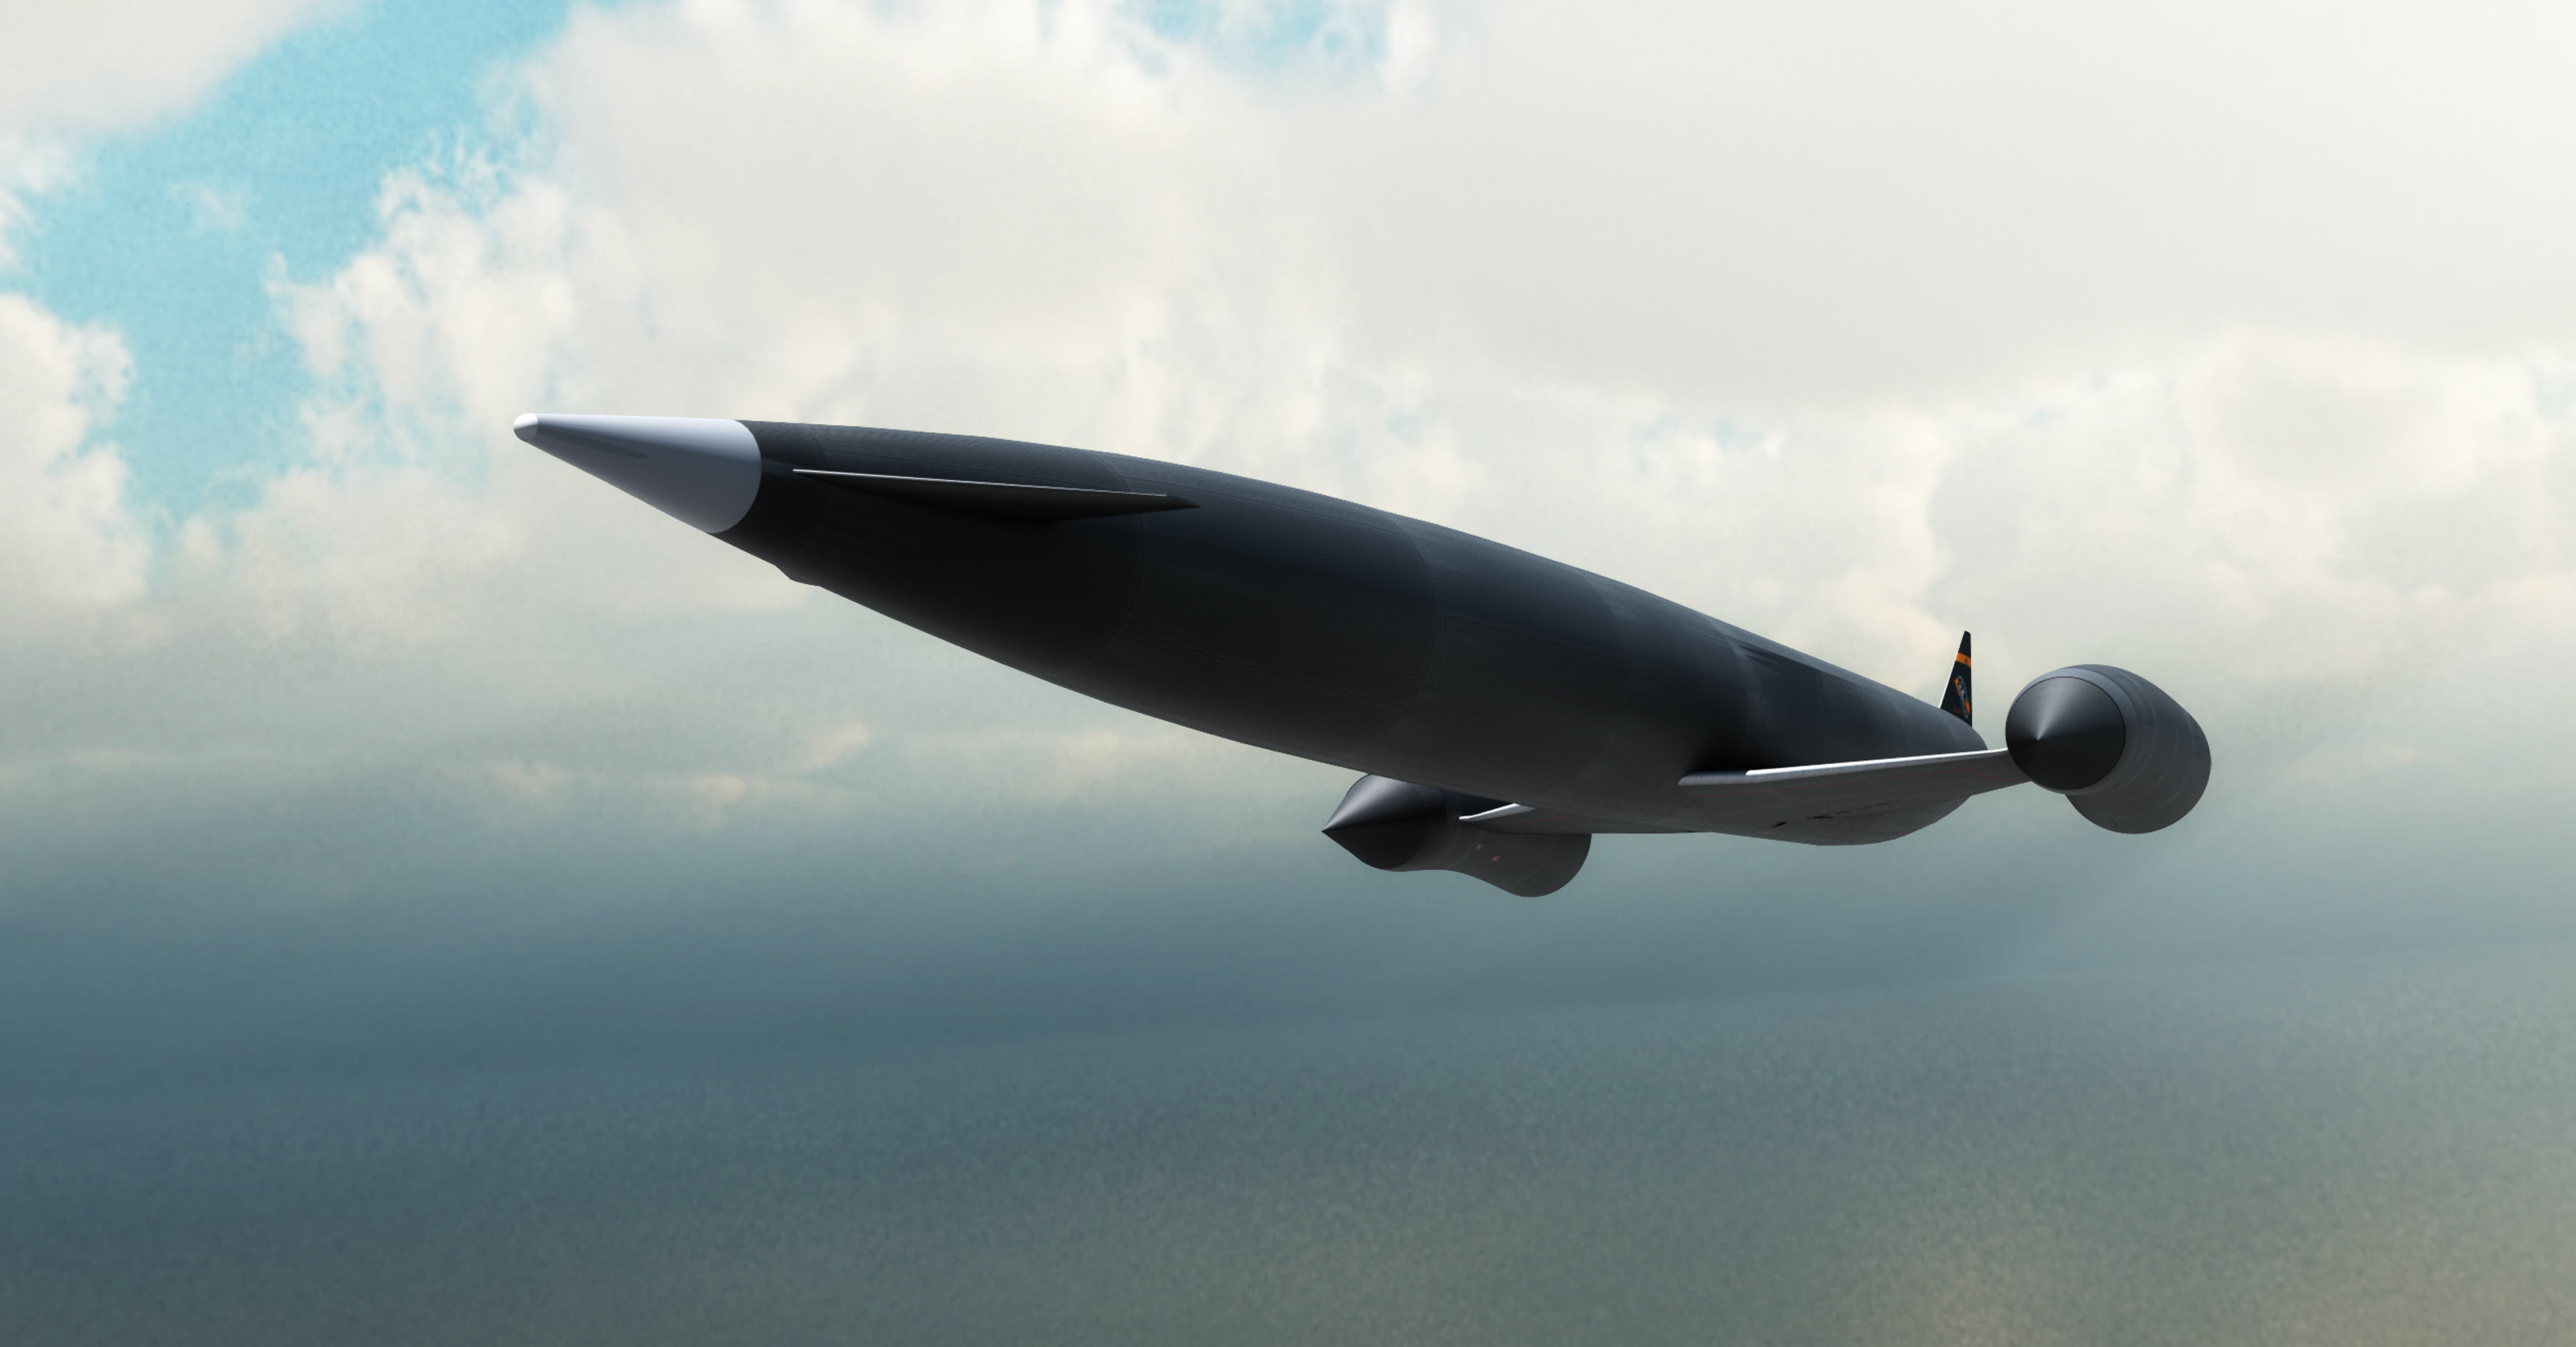 UNILAD skylon flight 2l22531 Insane New Super Plane Could Make Low Cost Space Travel Possible